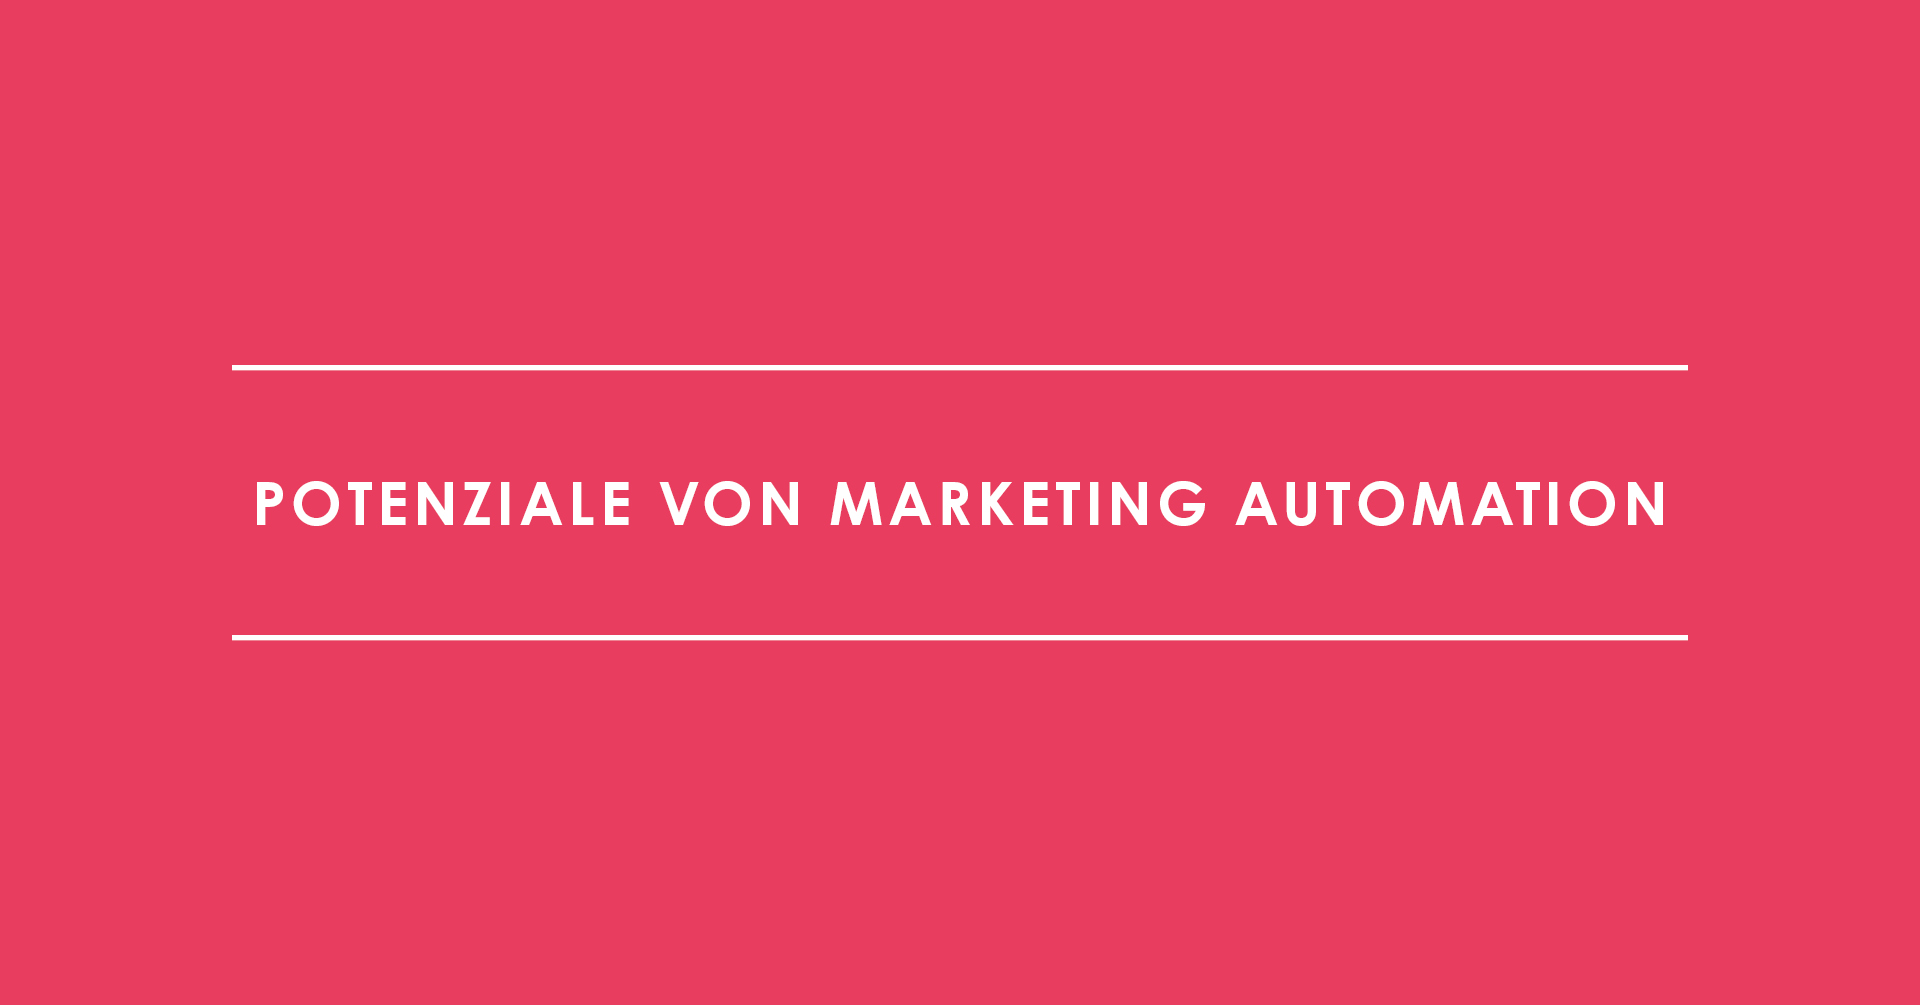 Potenziale von Marketing Automation